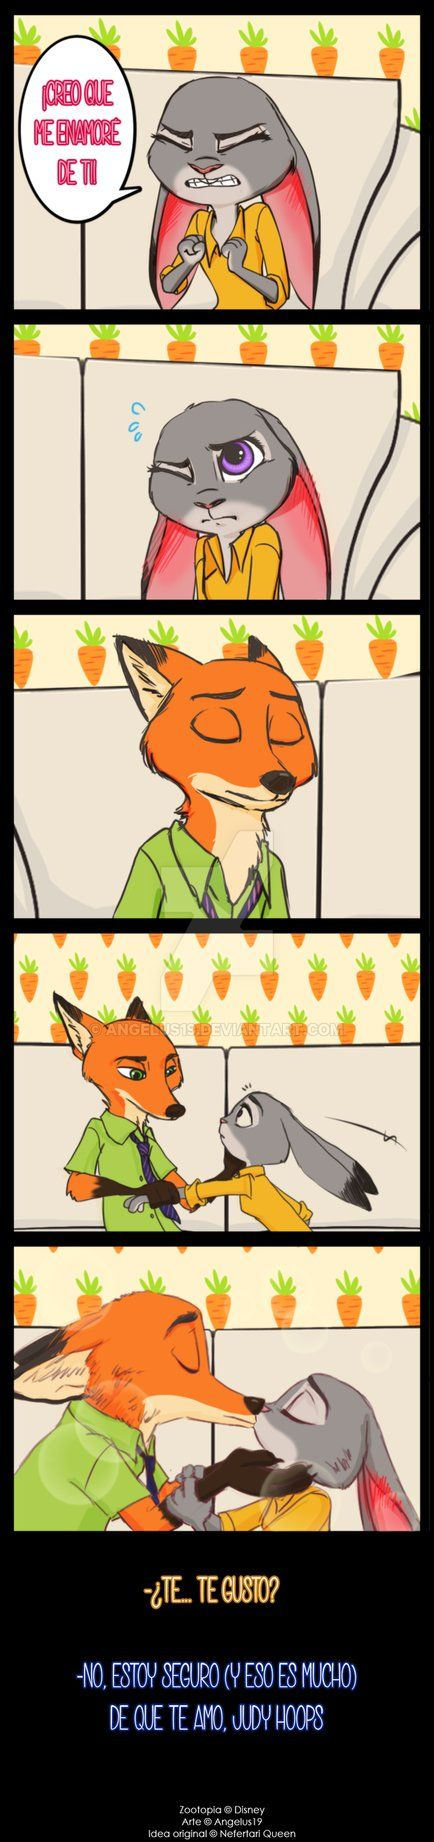 Zootopia - Creo que... by Angelus19 on DeviantArt